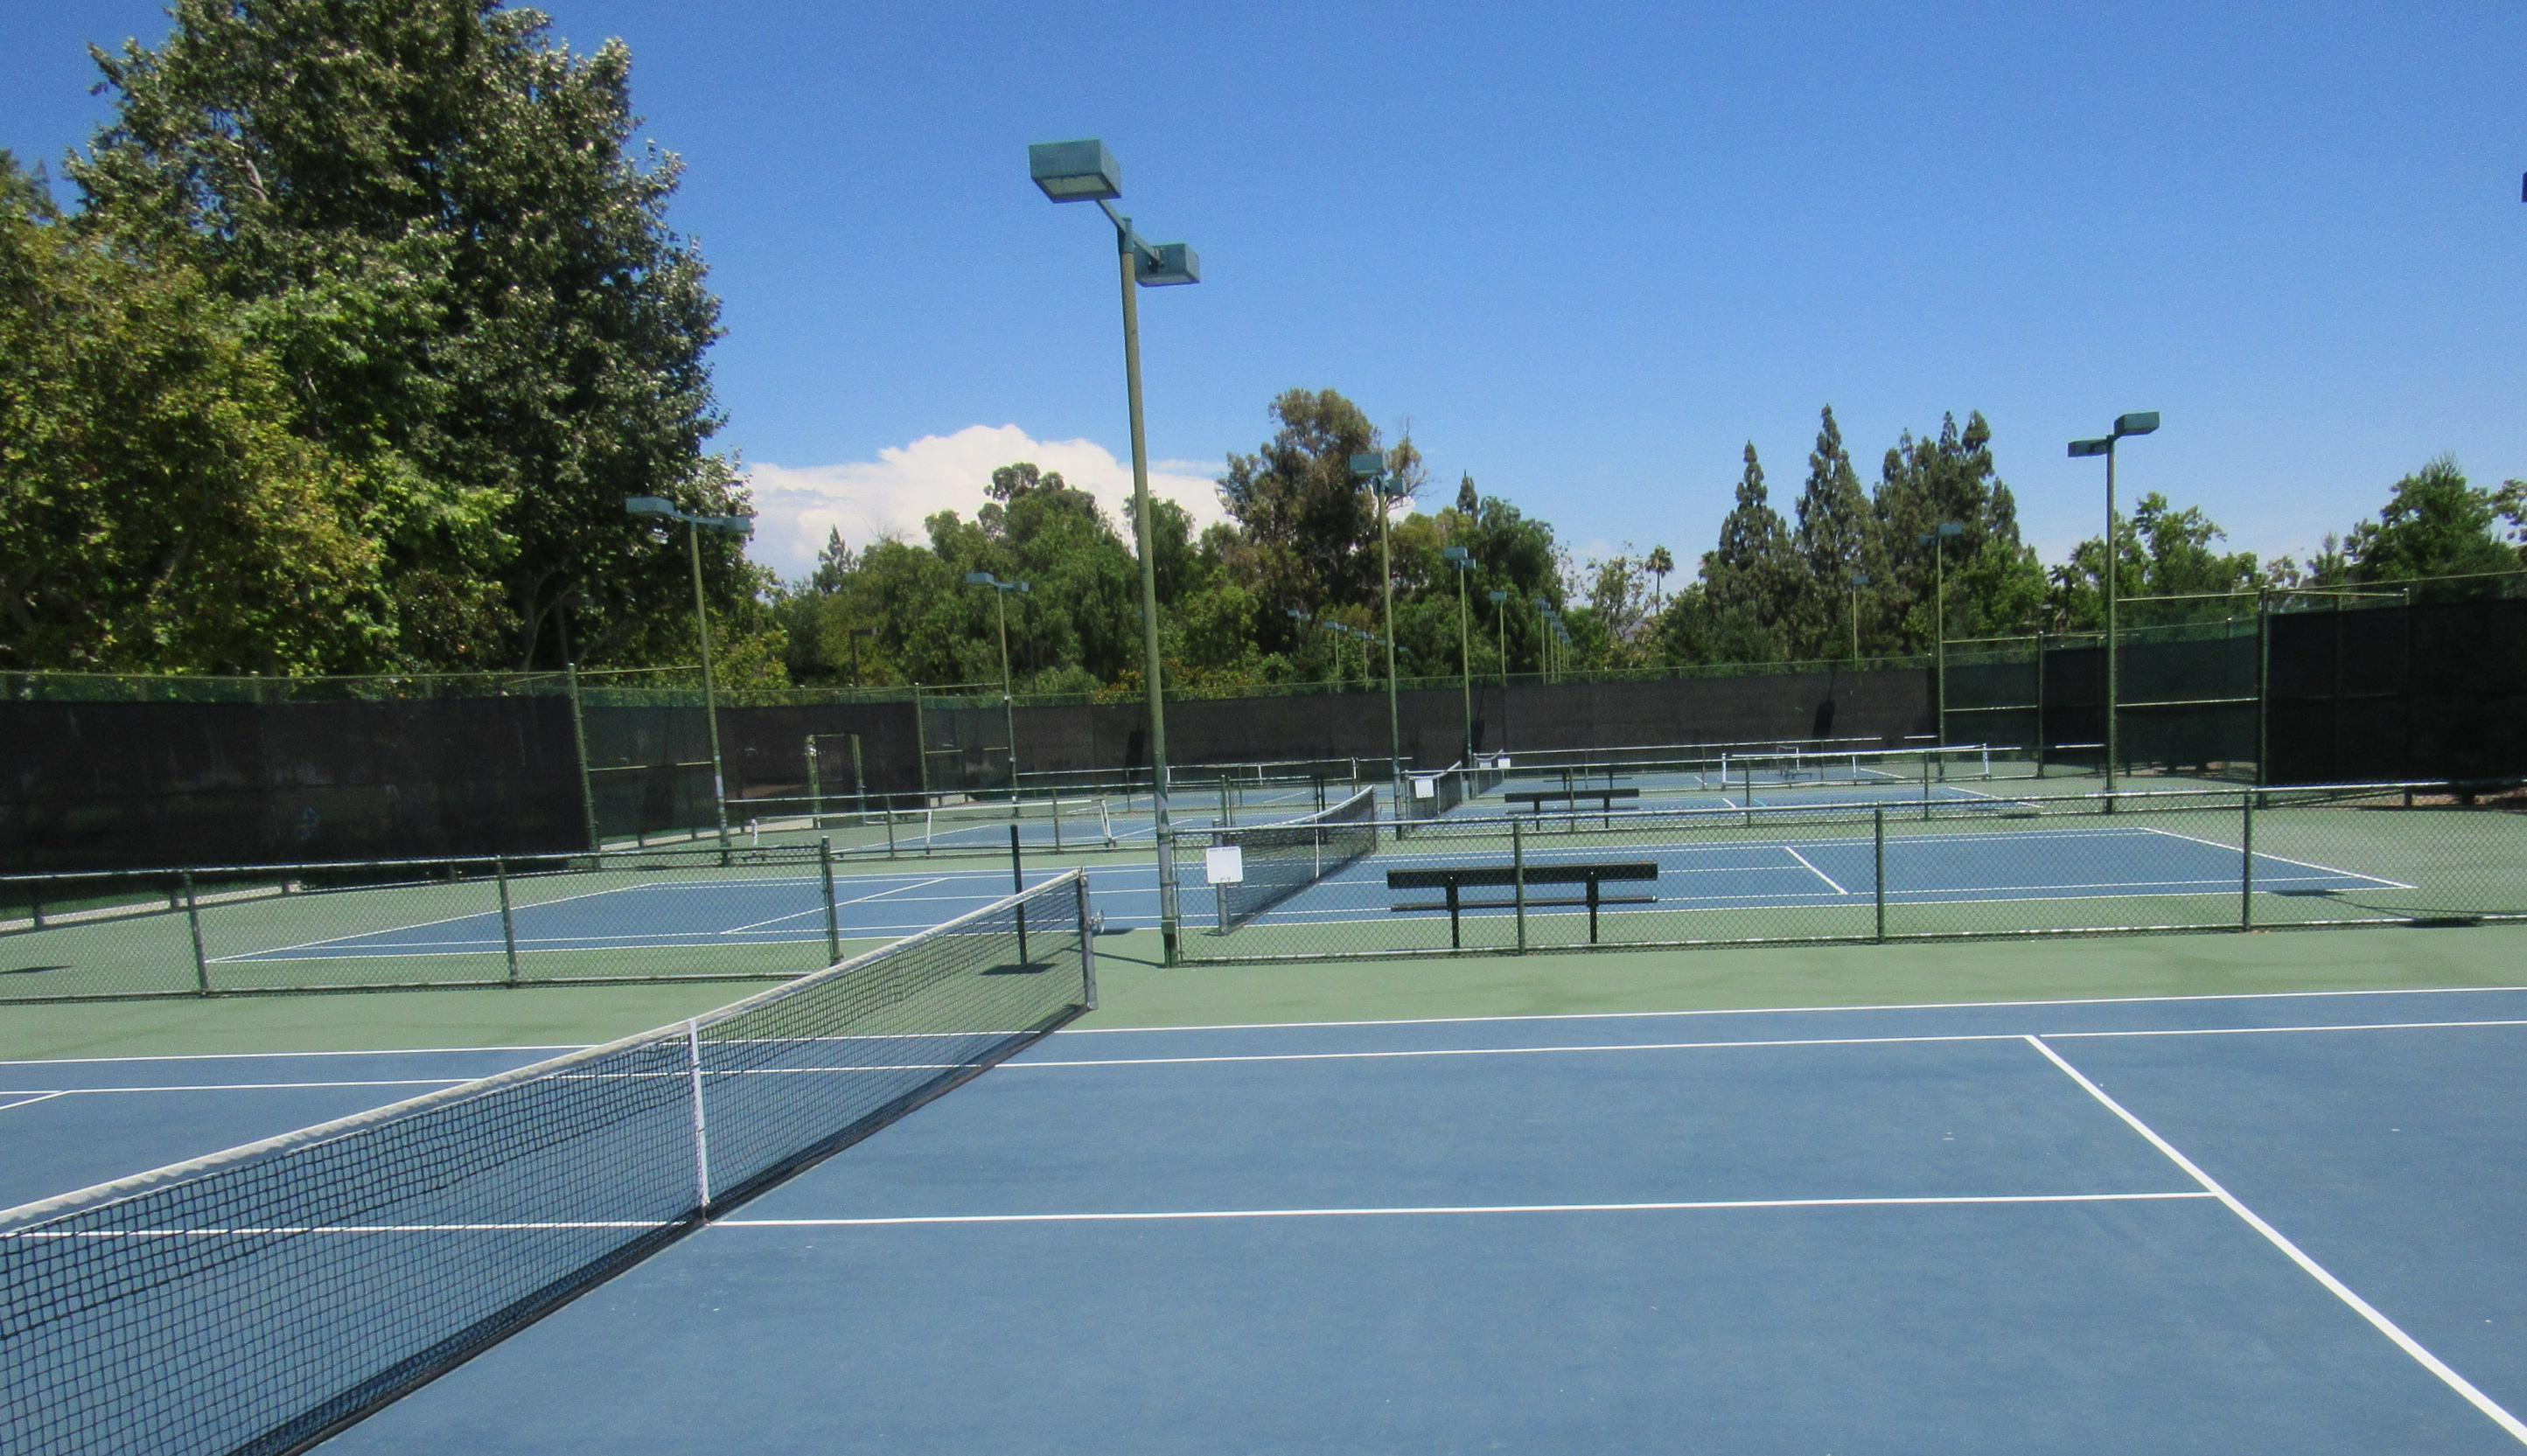 RTCP Pickle ball and tennis courts